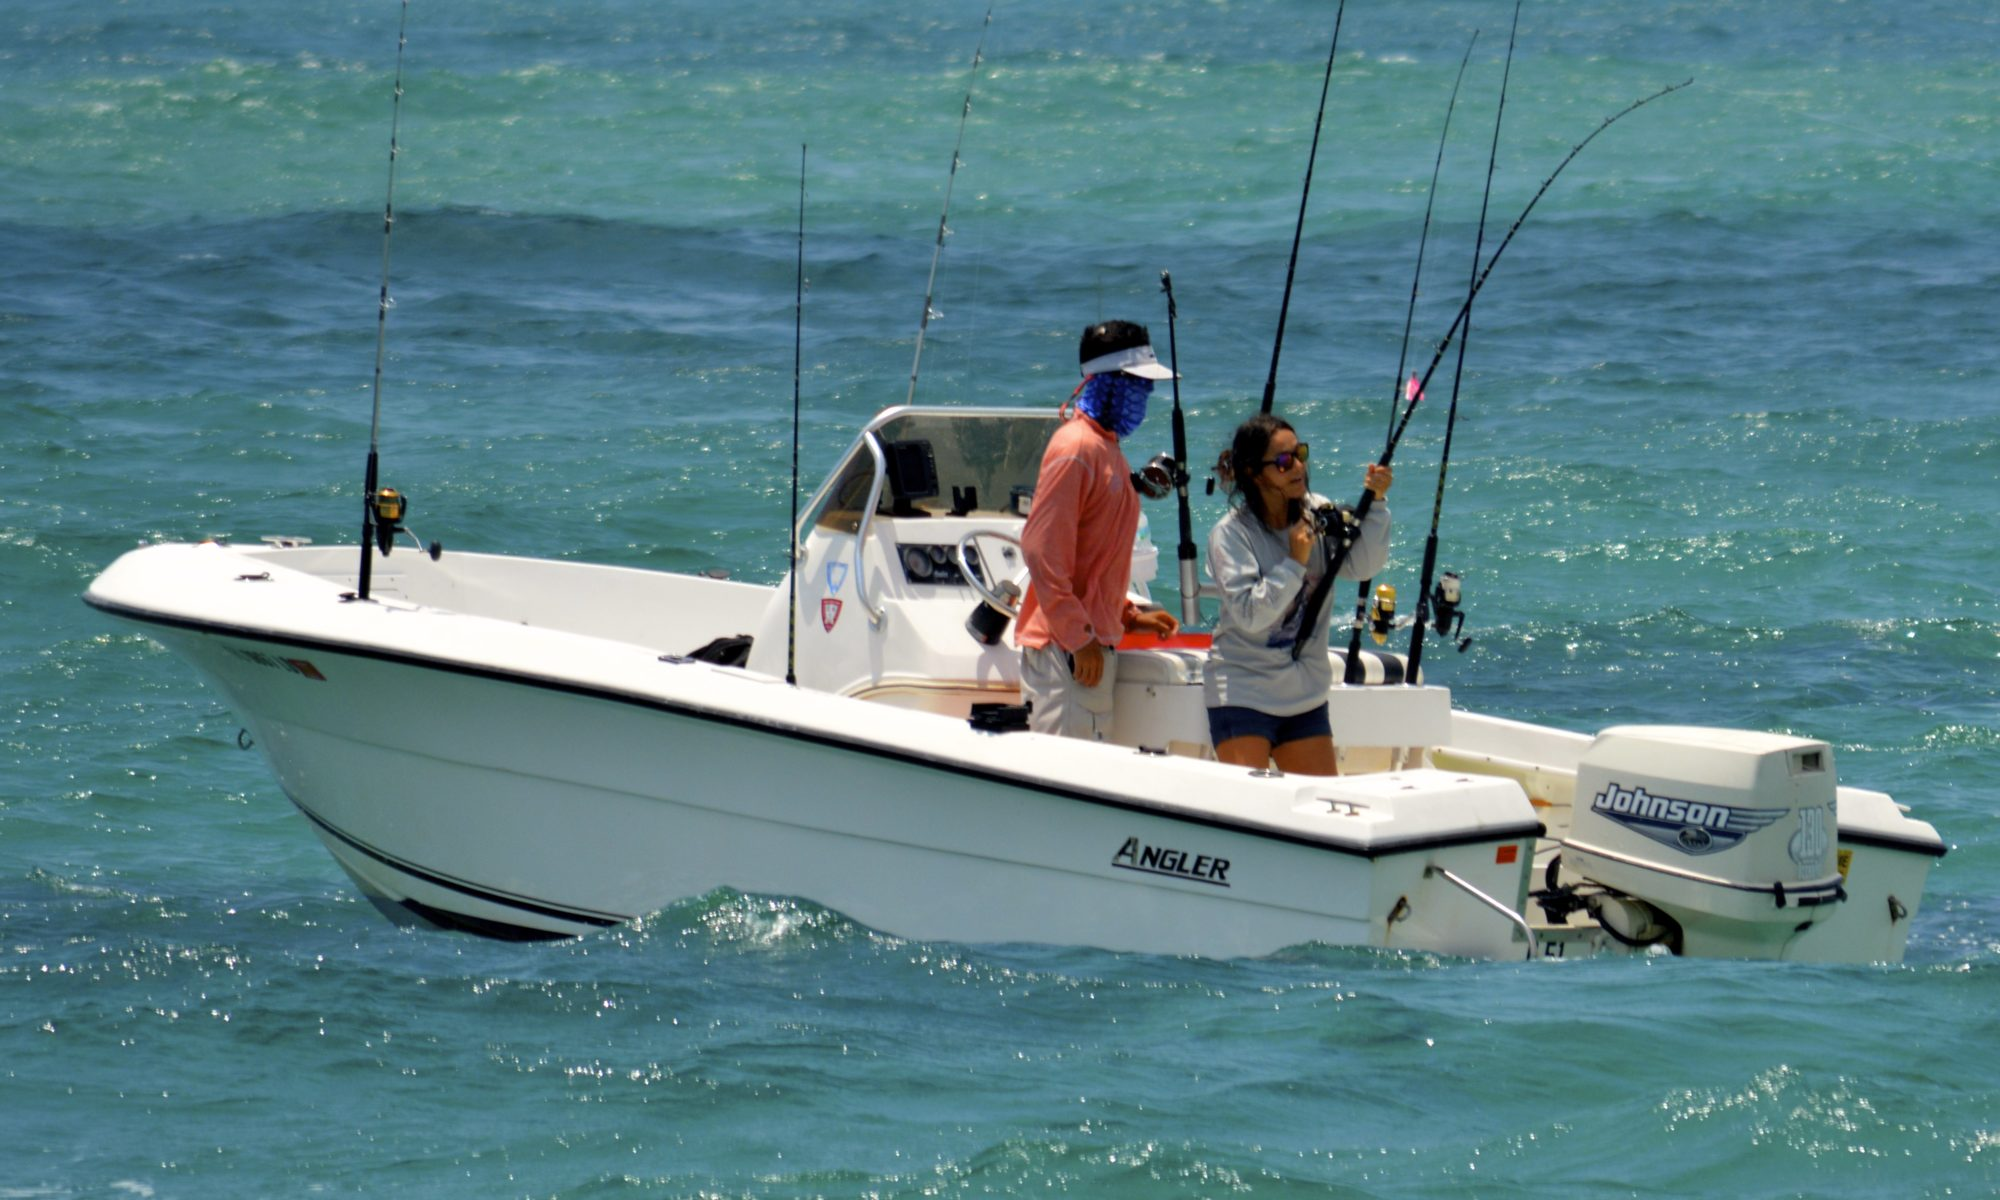 32 intrepid cuddy cabin sportfish boat with cabin benches for Delray beach fishing charters